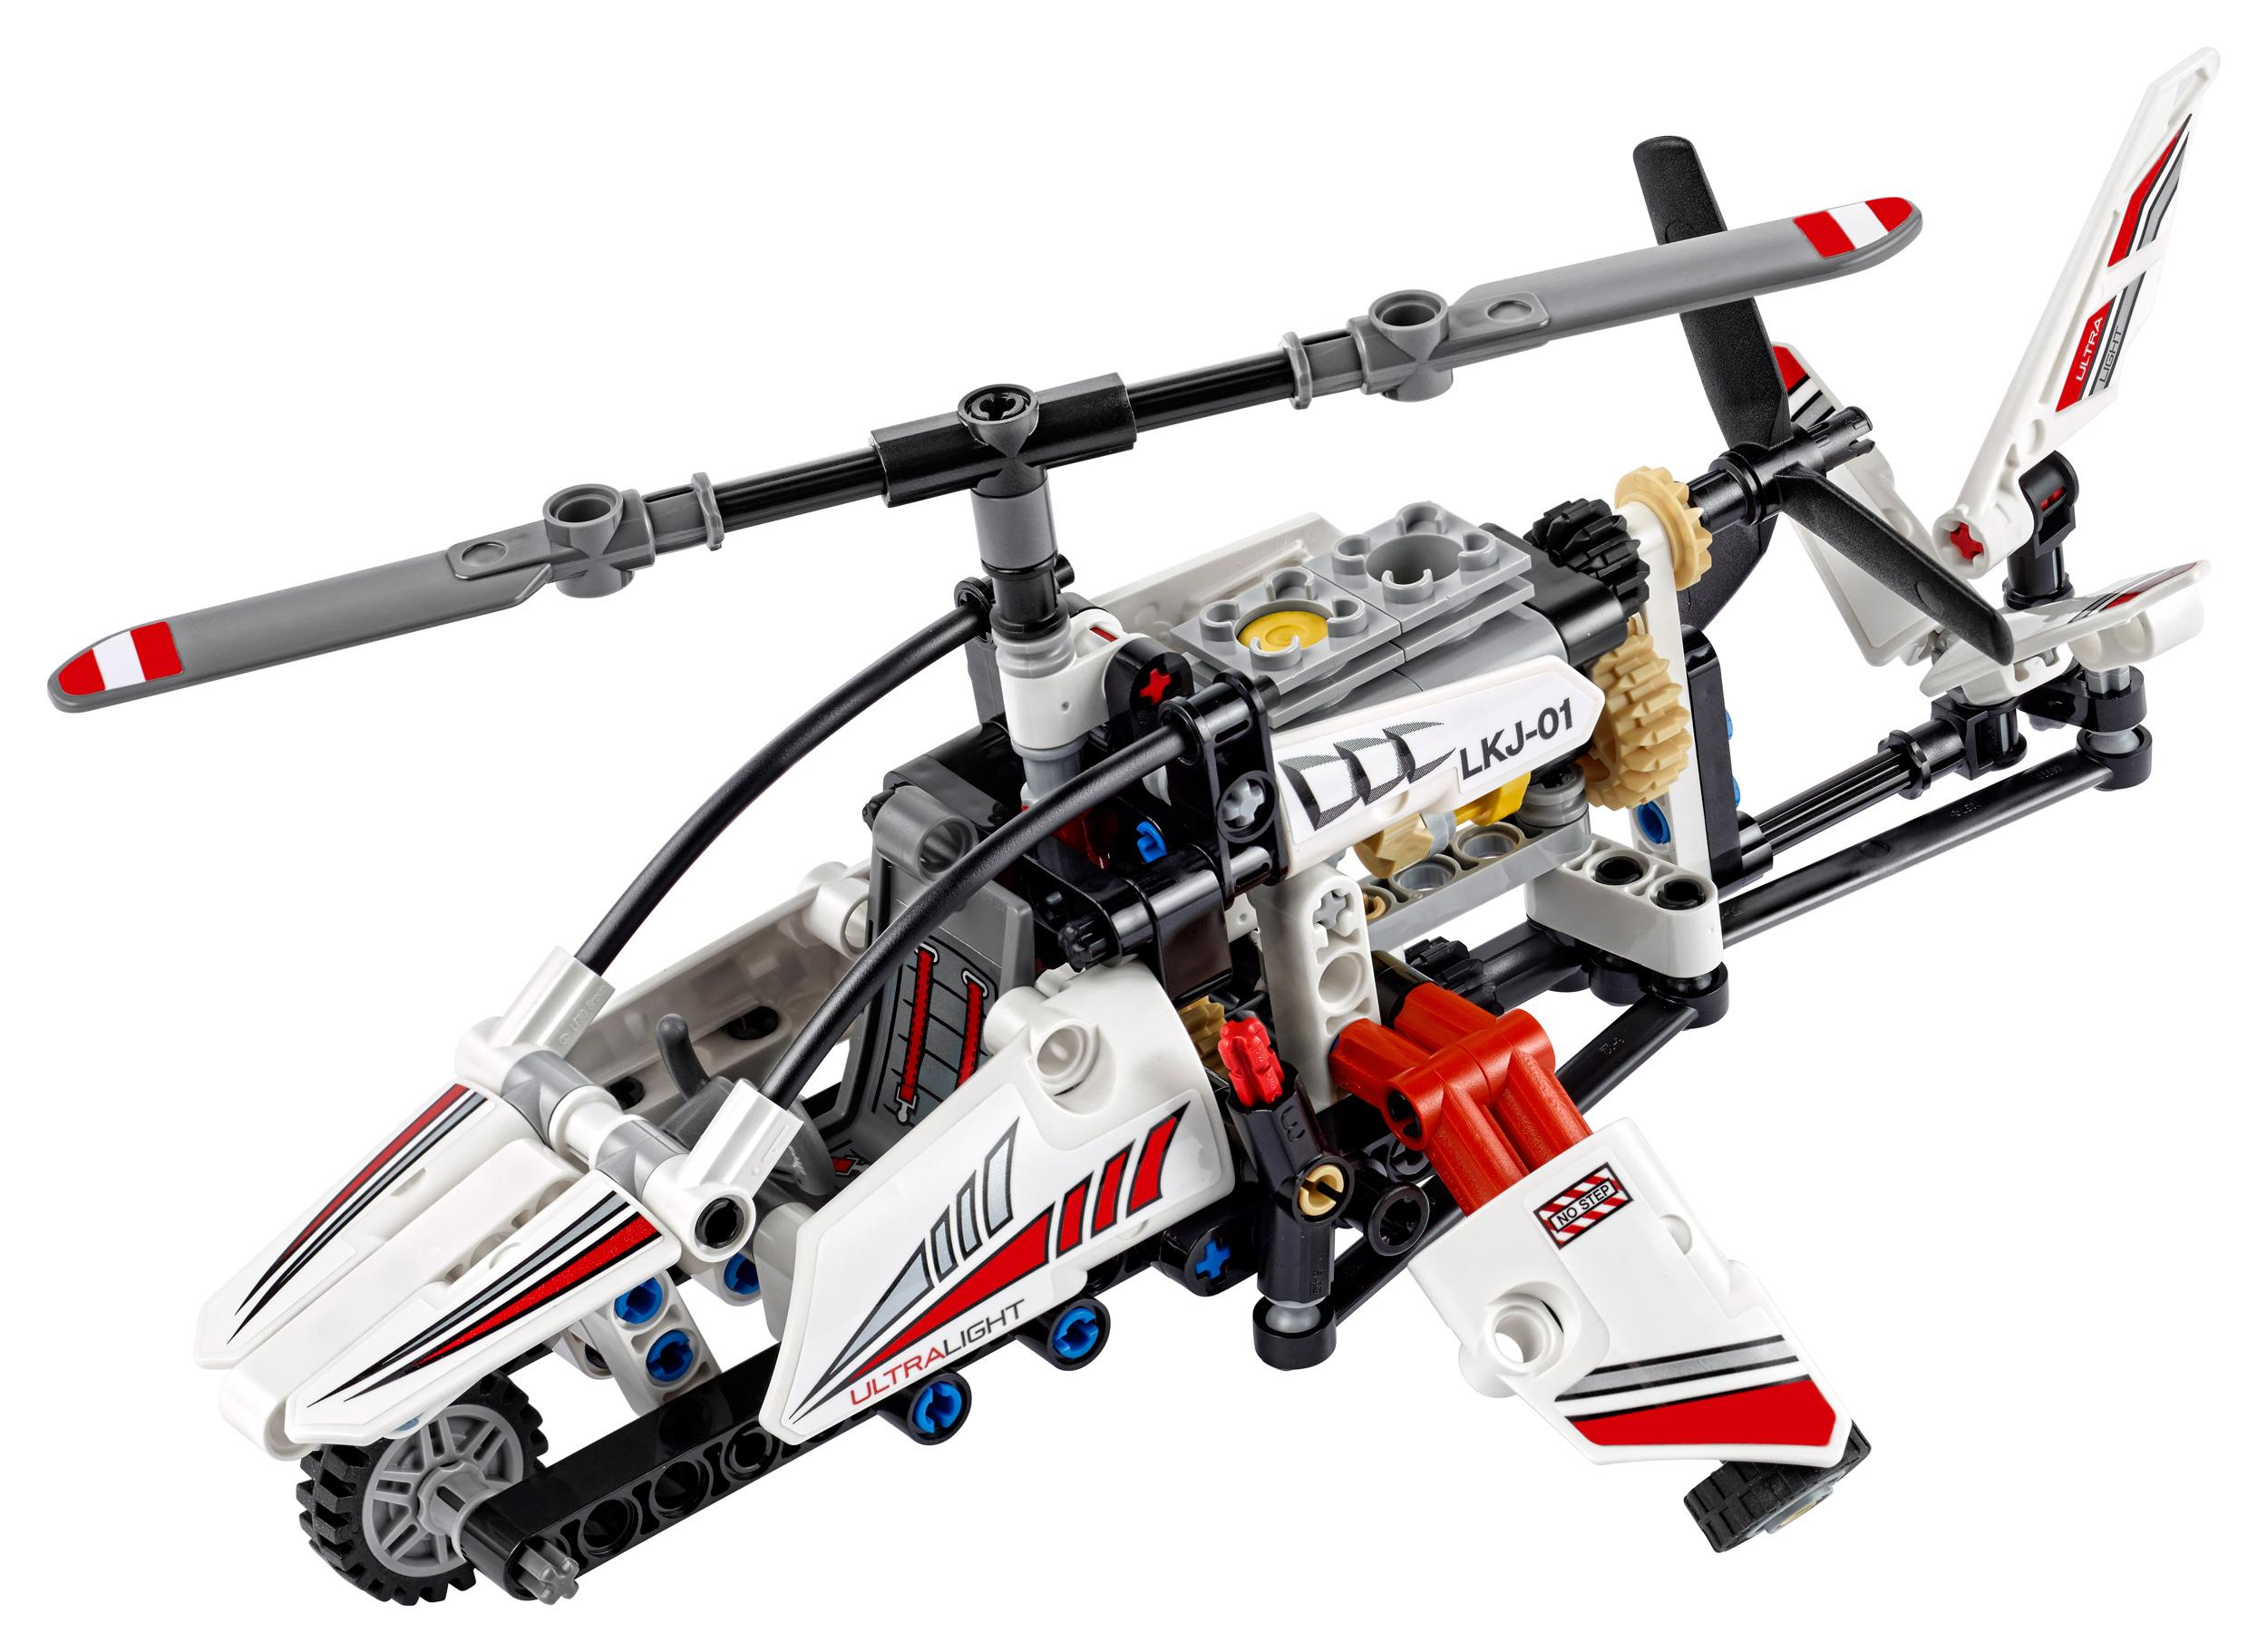 lego technic ultralight helicopter 42057 advance building set toys games. Black Bedroom Furniture Sets. Home Design Ideas